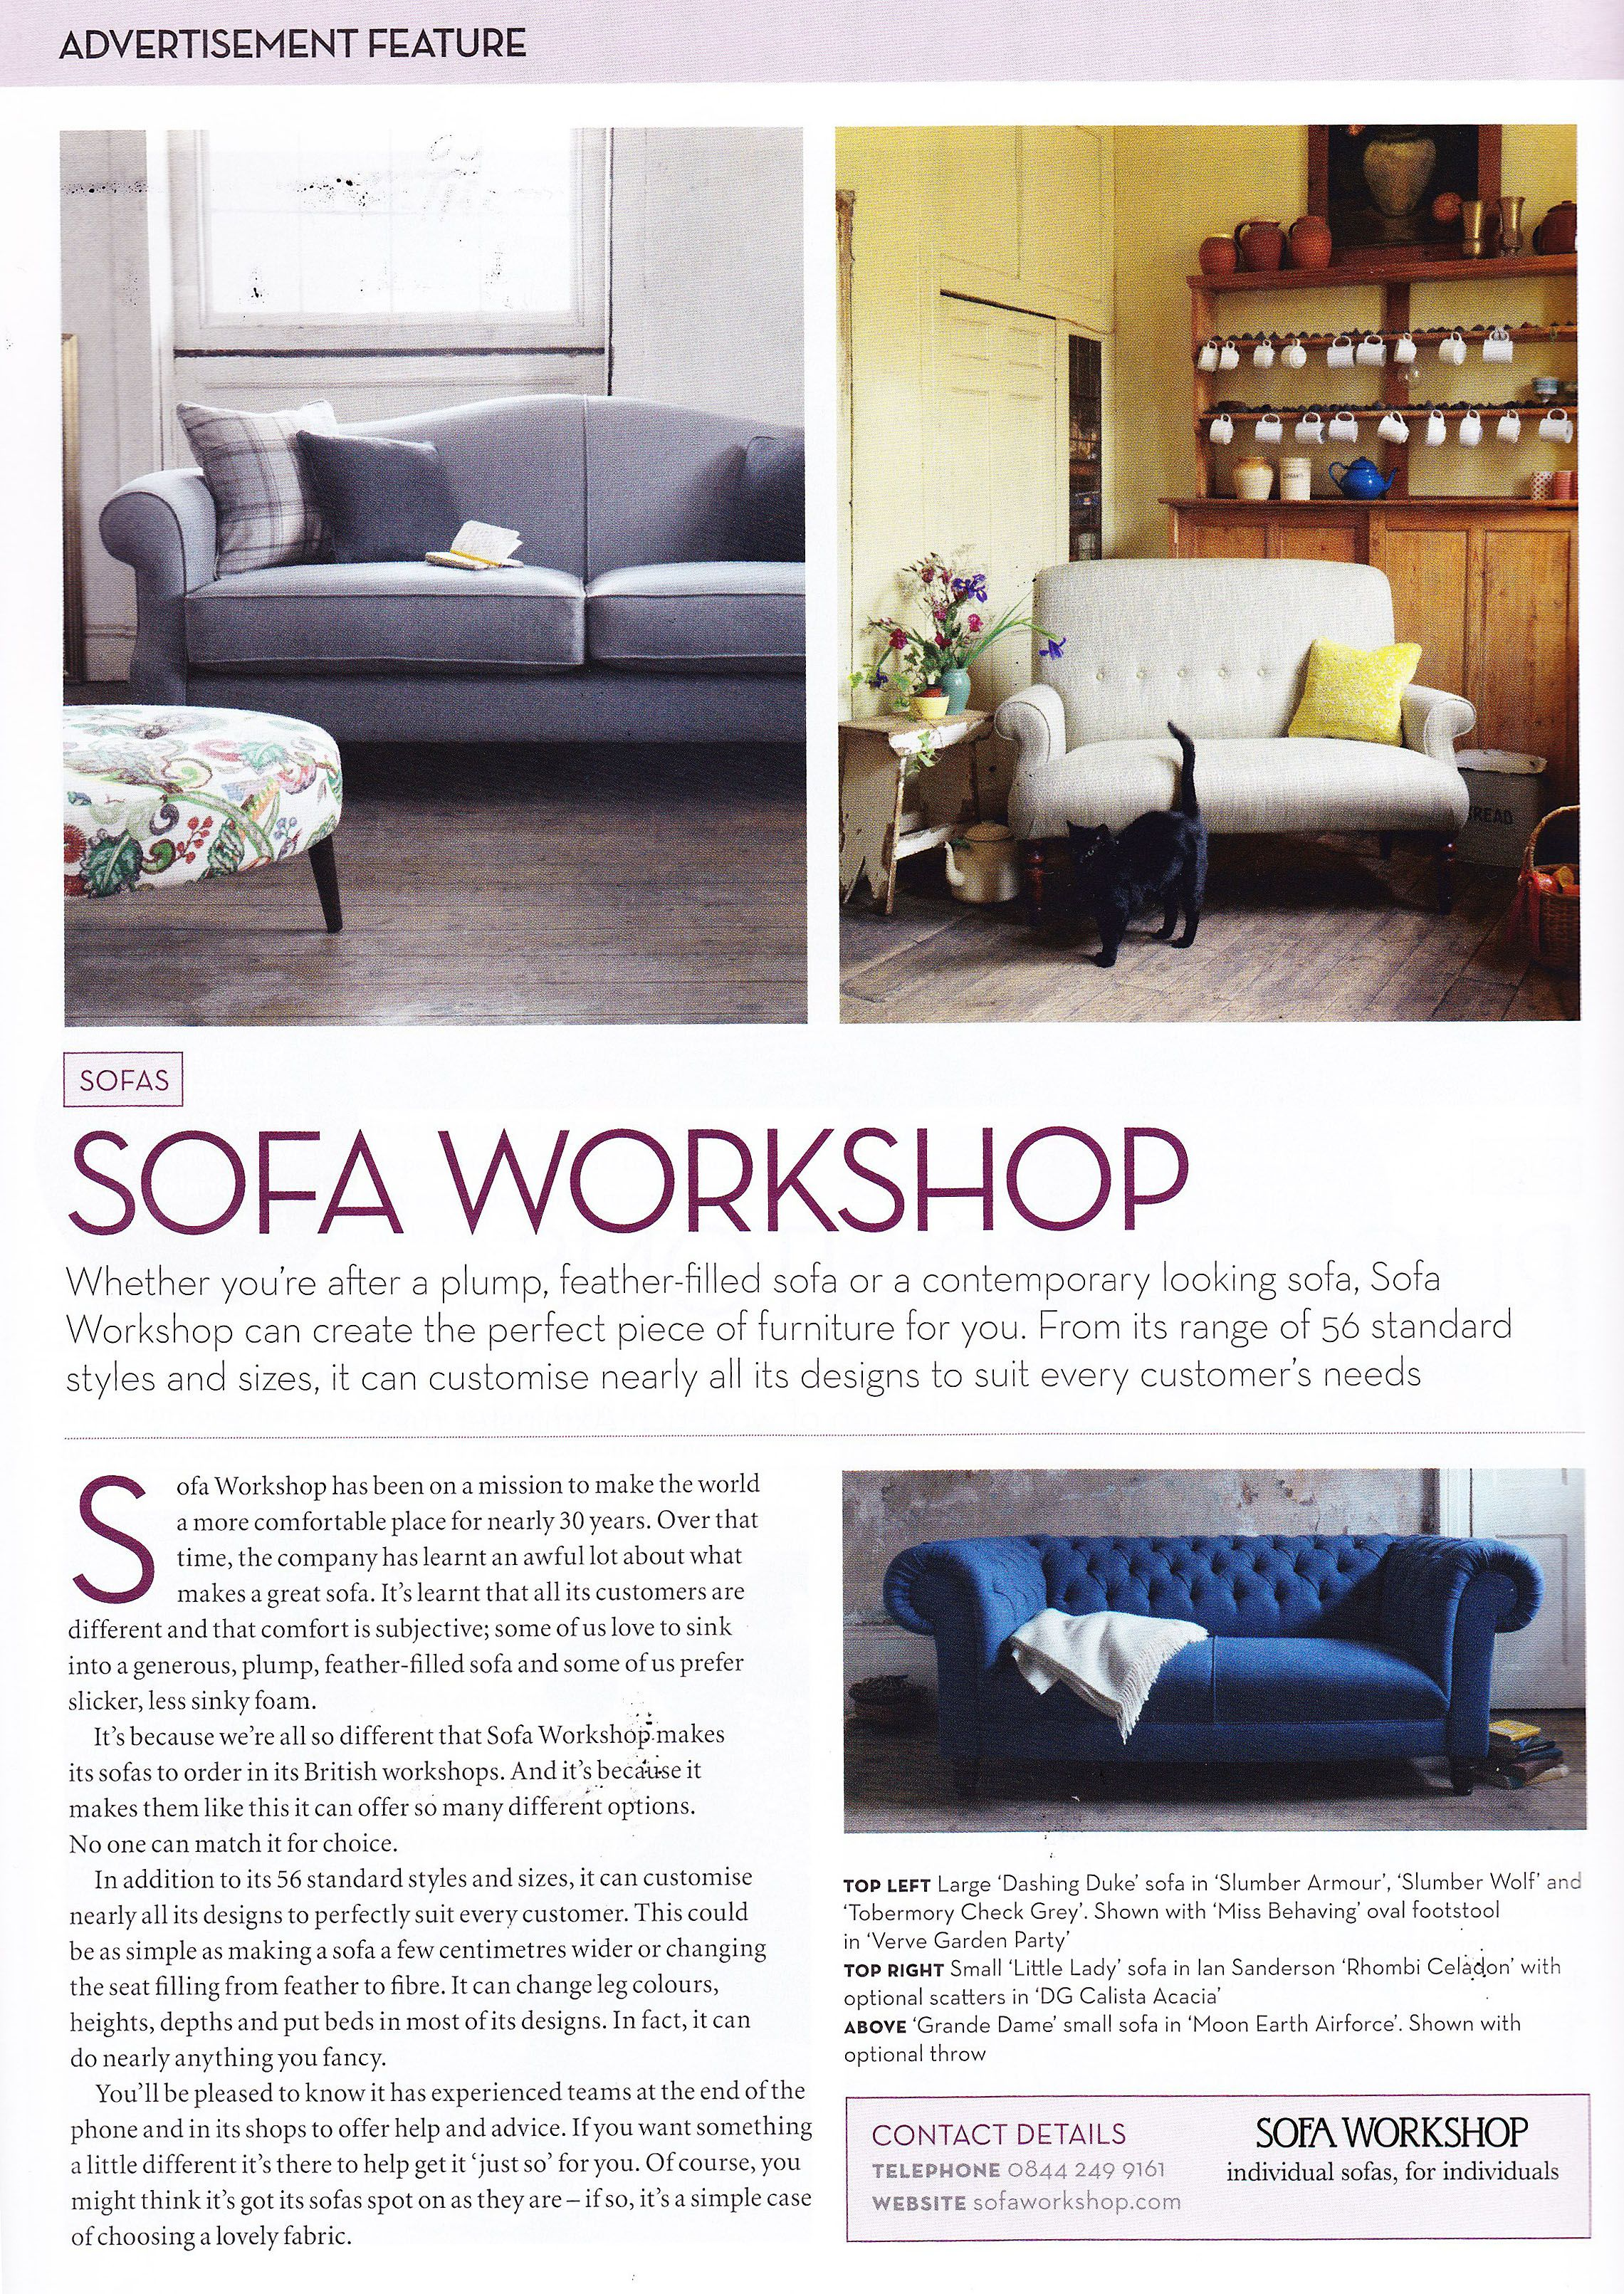 A \'Sofa Workshop\' advert in \'Homes & Antiques\' magazine features ...